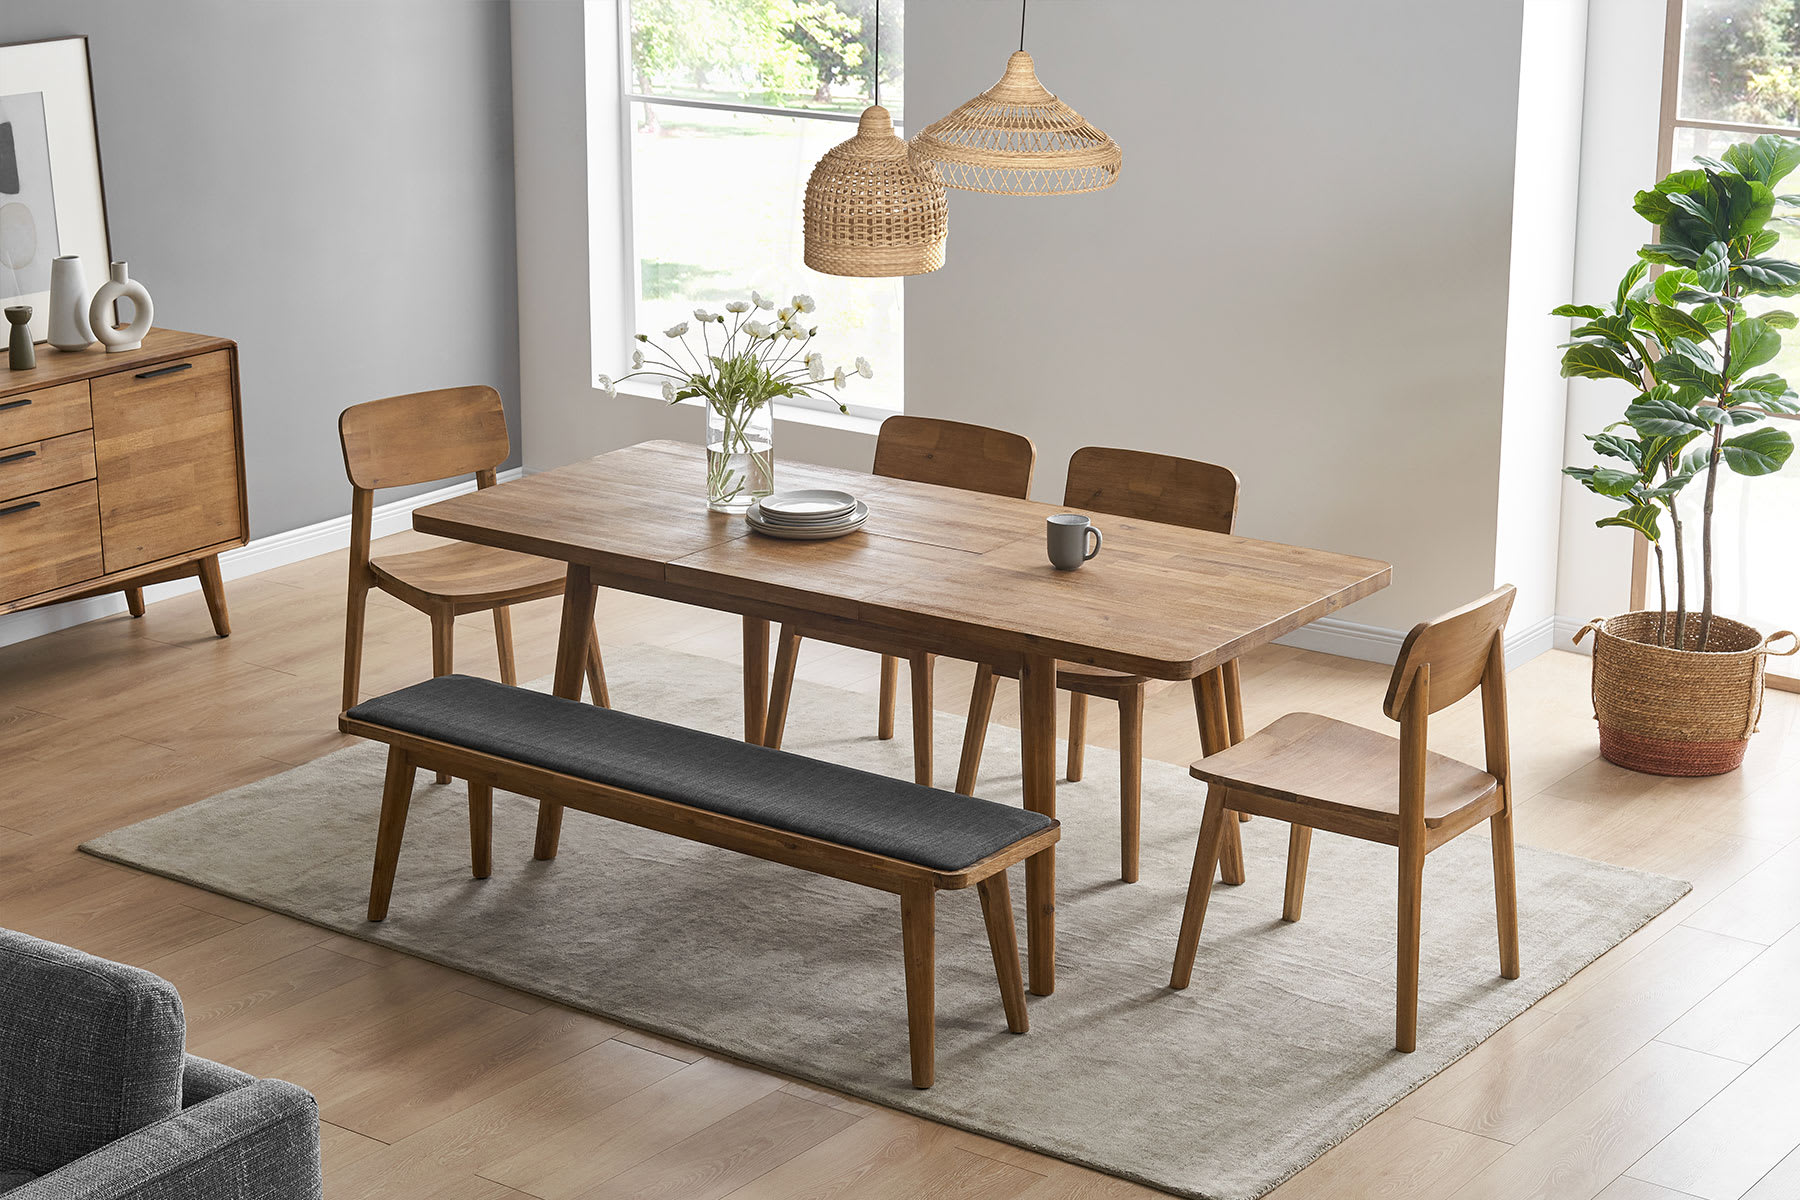 Shape Of Dining Table, Extra Long Dining Room Table Bench